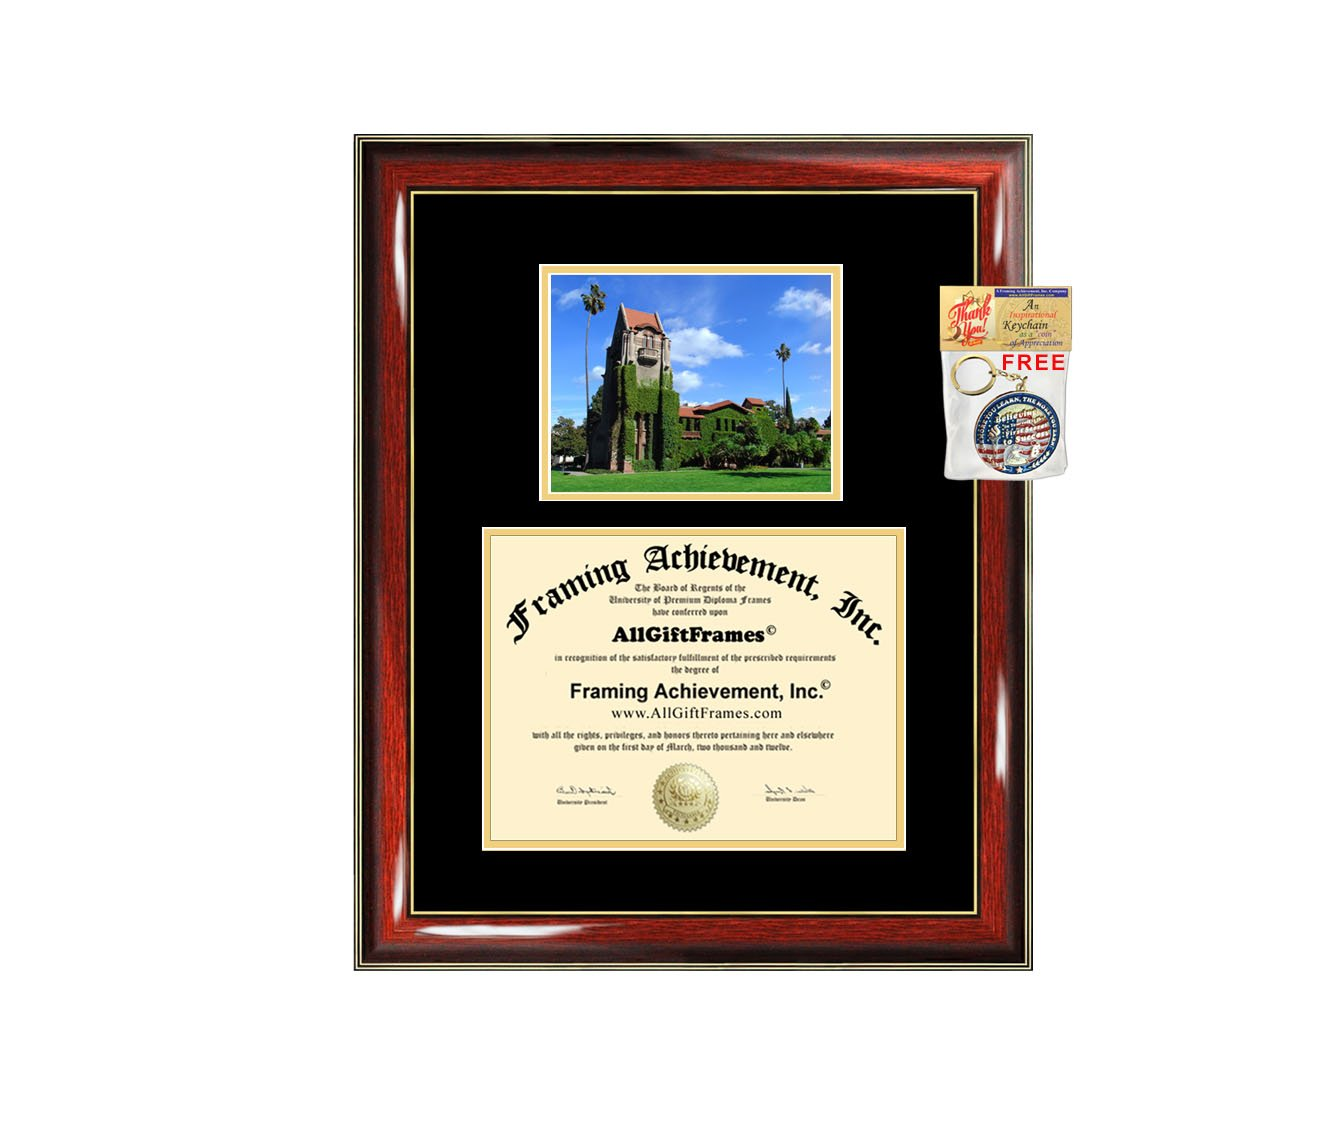 San Jose State University Diploma Frame SJSU Graduation Degree Frames Double Matted Campus College Photo Graduation Certificate Plaque University Framing Certification Graduate Gift Collegiate